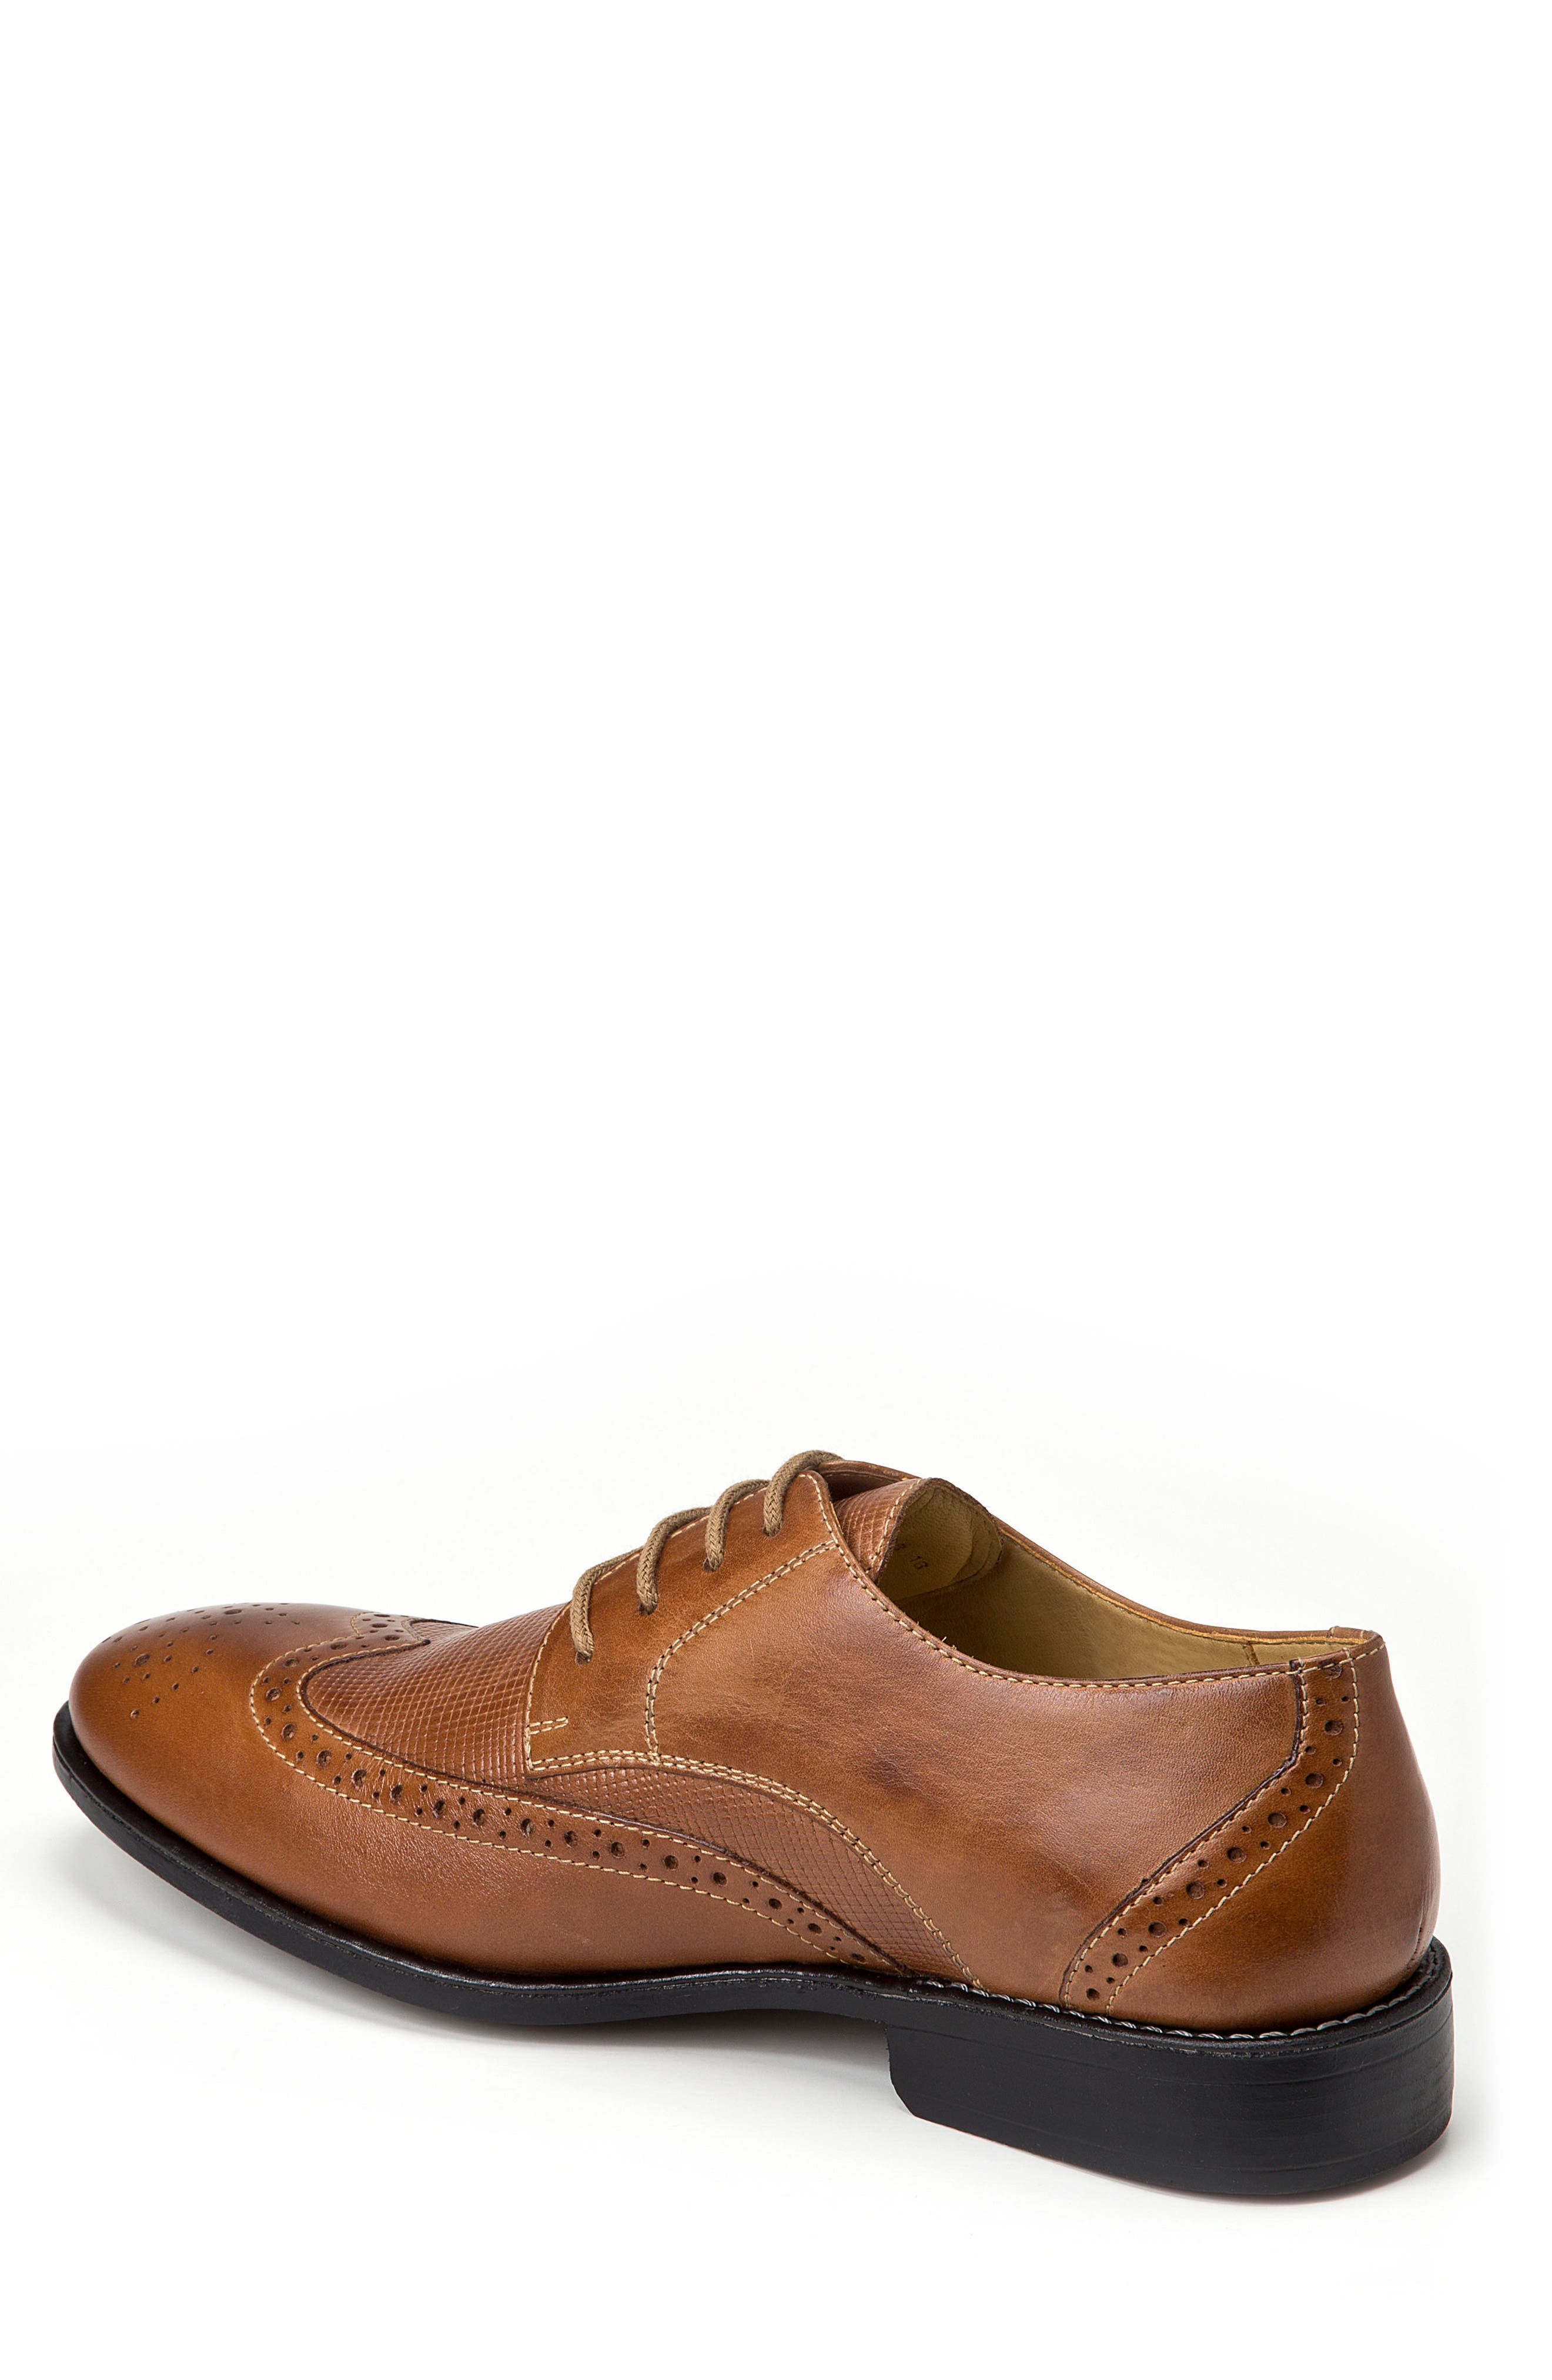 Donovan Wingtip,                             Alternate thumbnail 2, color,                             Tan Leather